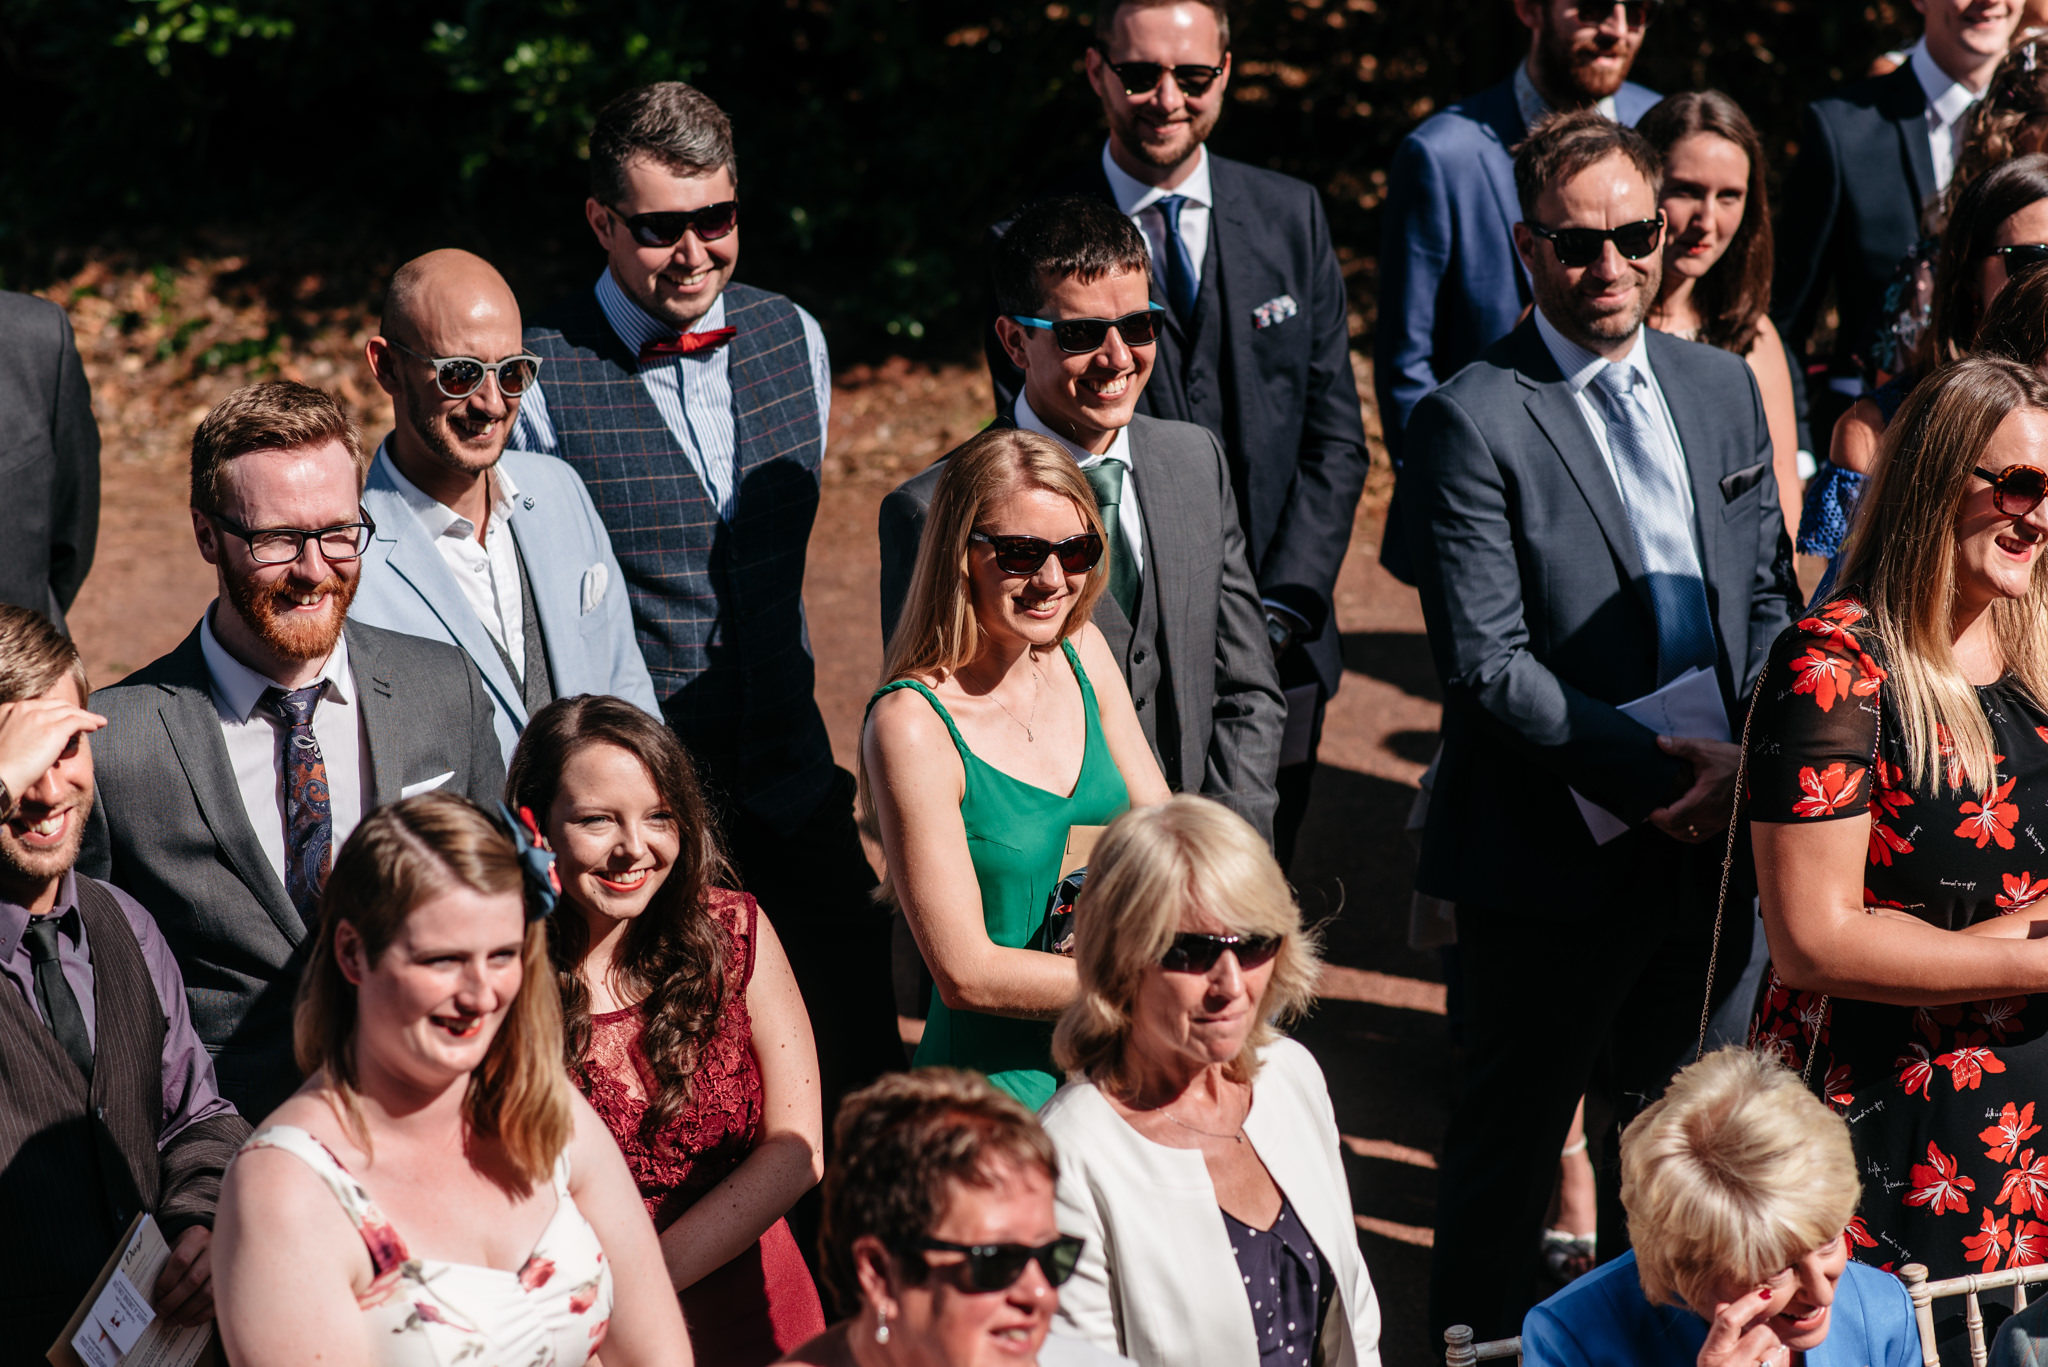 guests wearing sunglasses